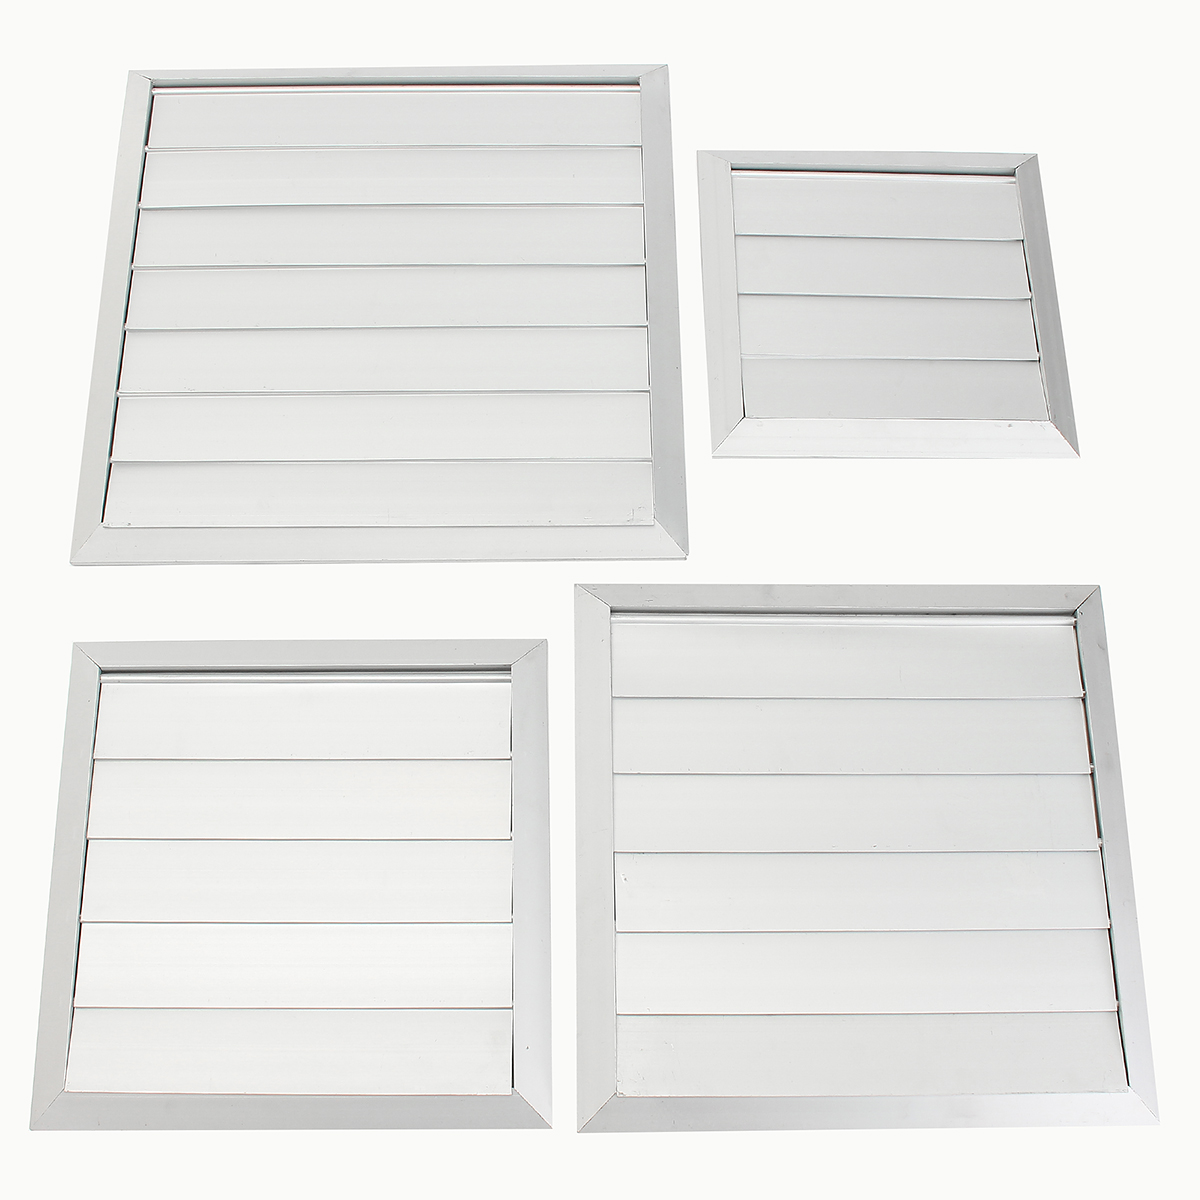 4/5/6/7 Flaps Air Vent Grille Cover Wall Duct Ventilation Louvre Exhaust Hood Hardware Core Vents